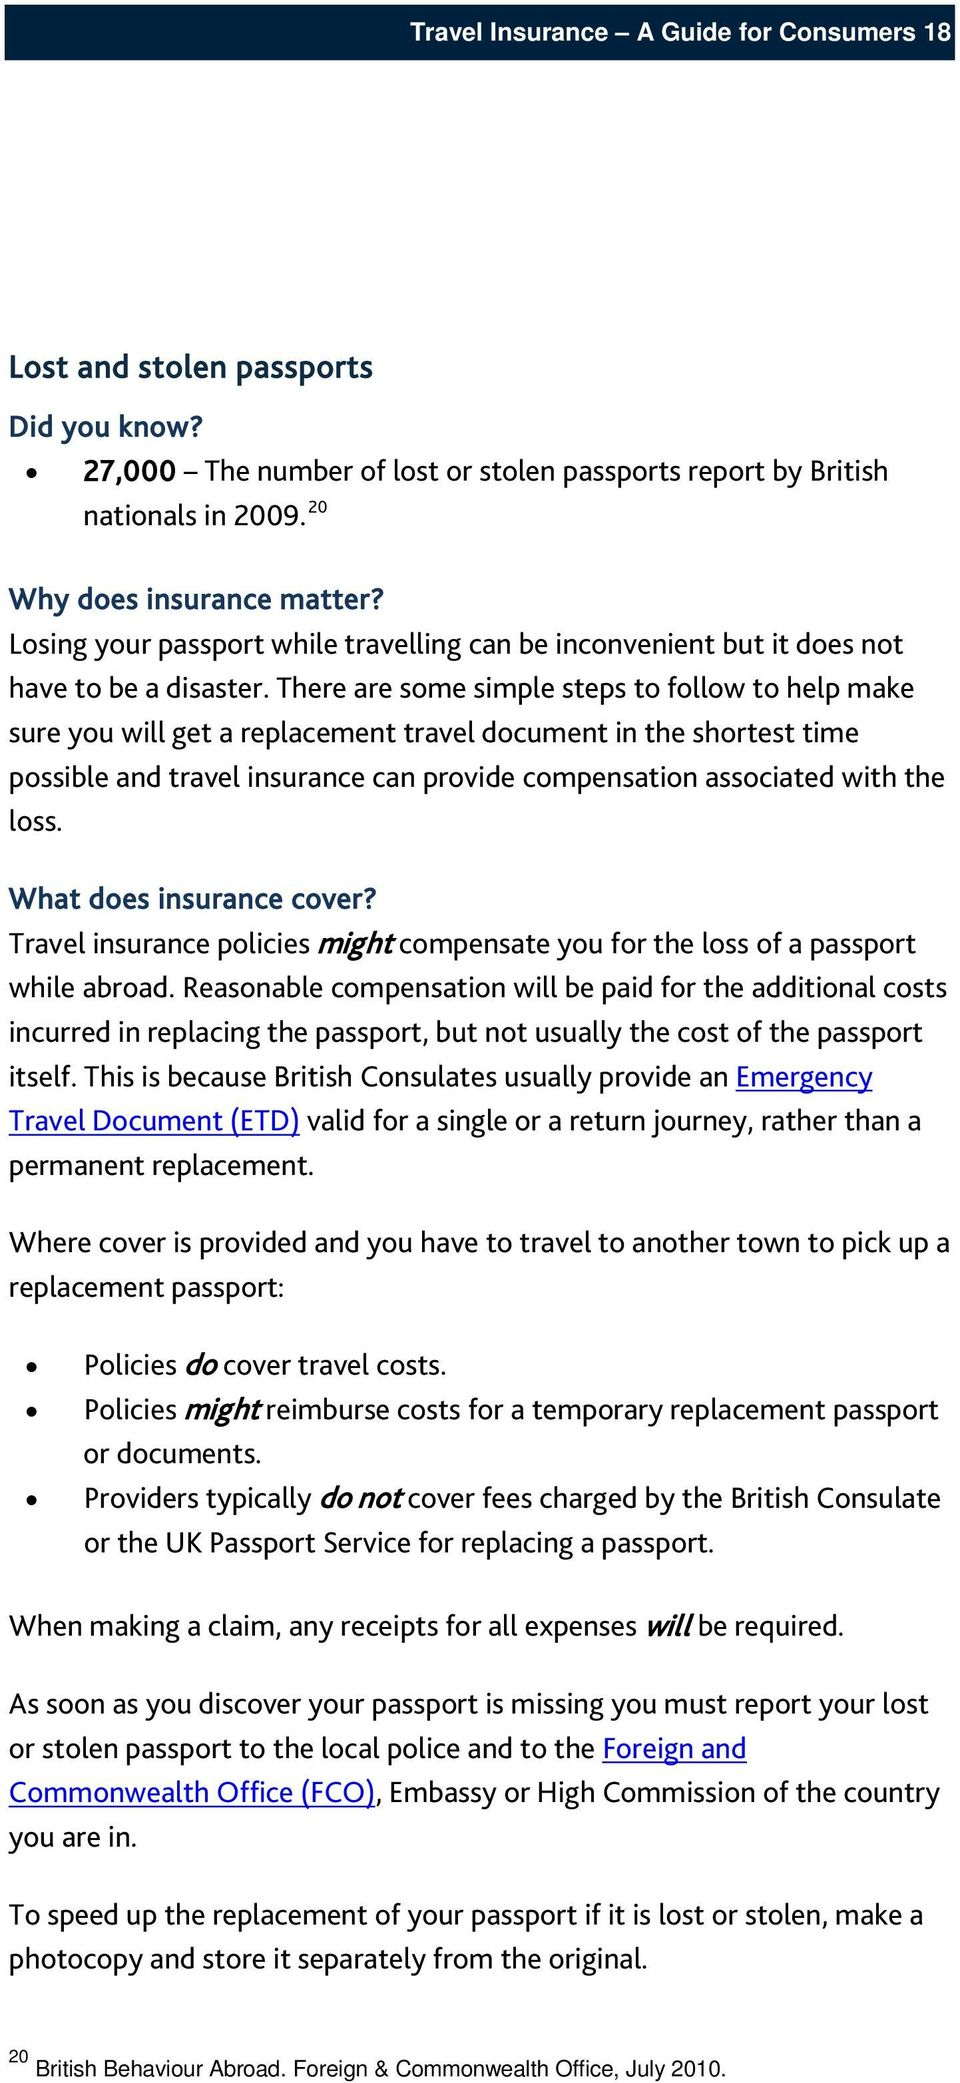 There are some simple steps to follow to help make sure you will get a replacement travel document in the shortest time possible and travel insurance can provide compensation associated with the loss.